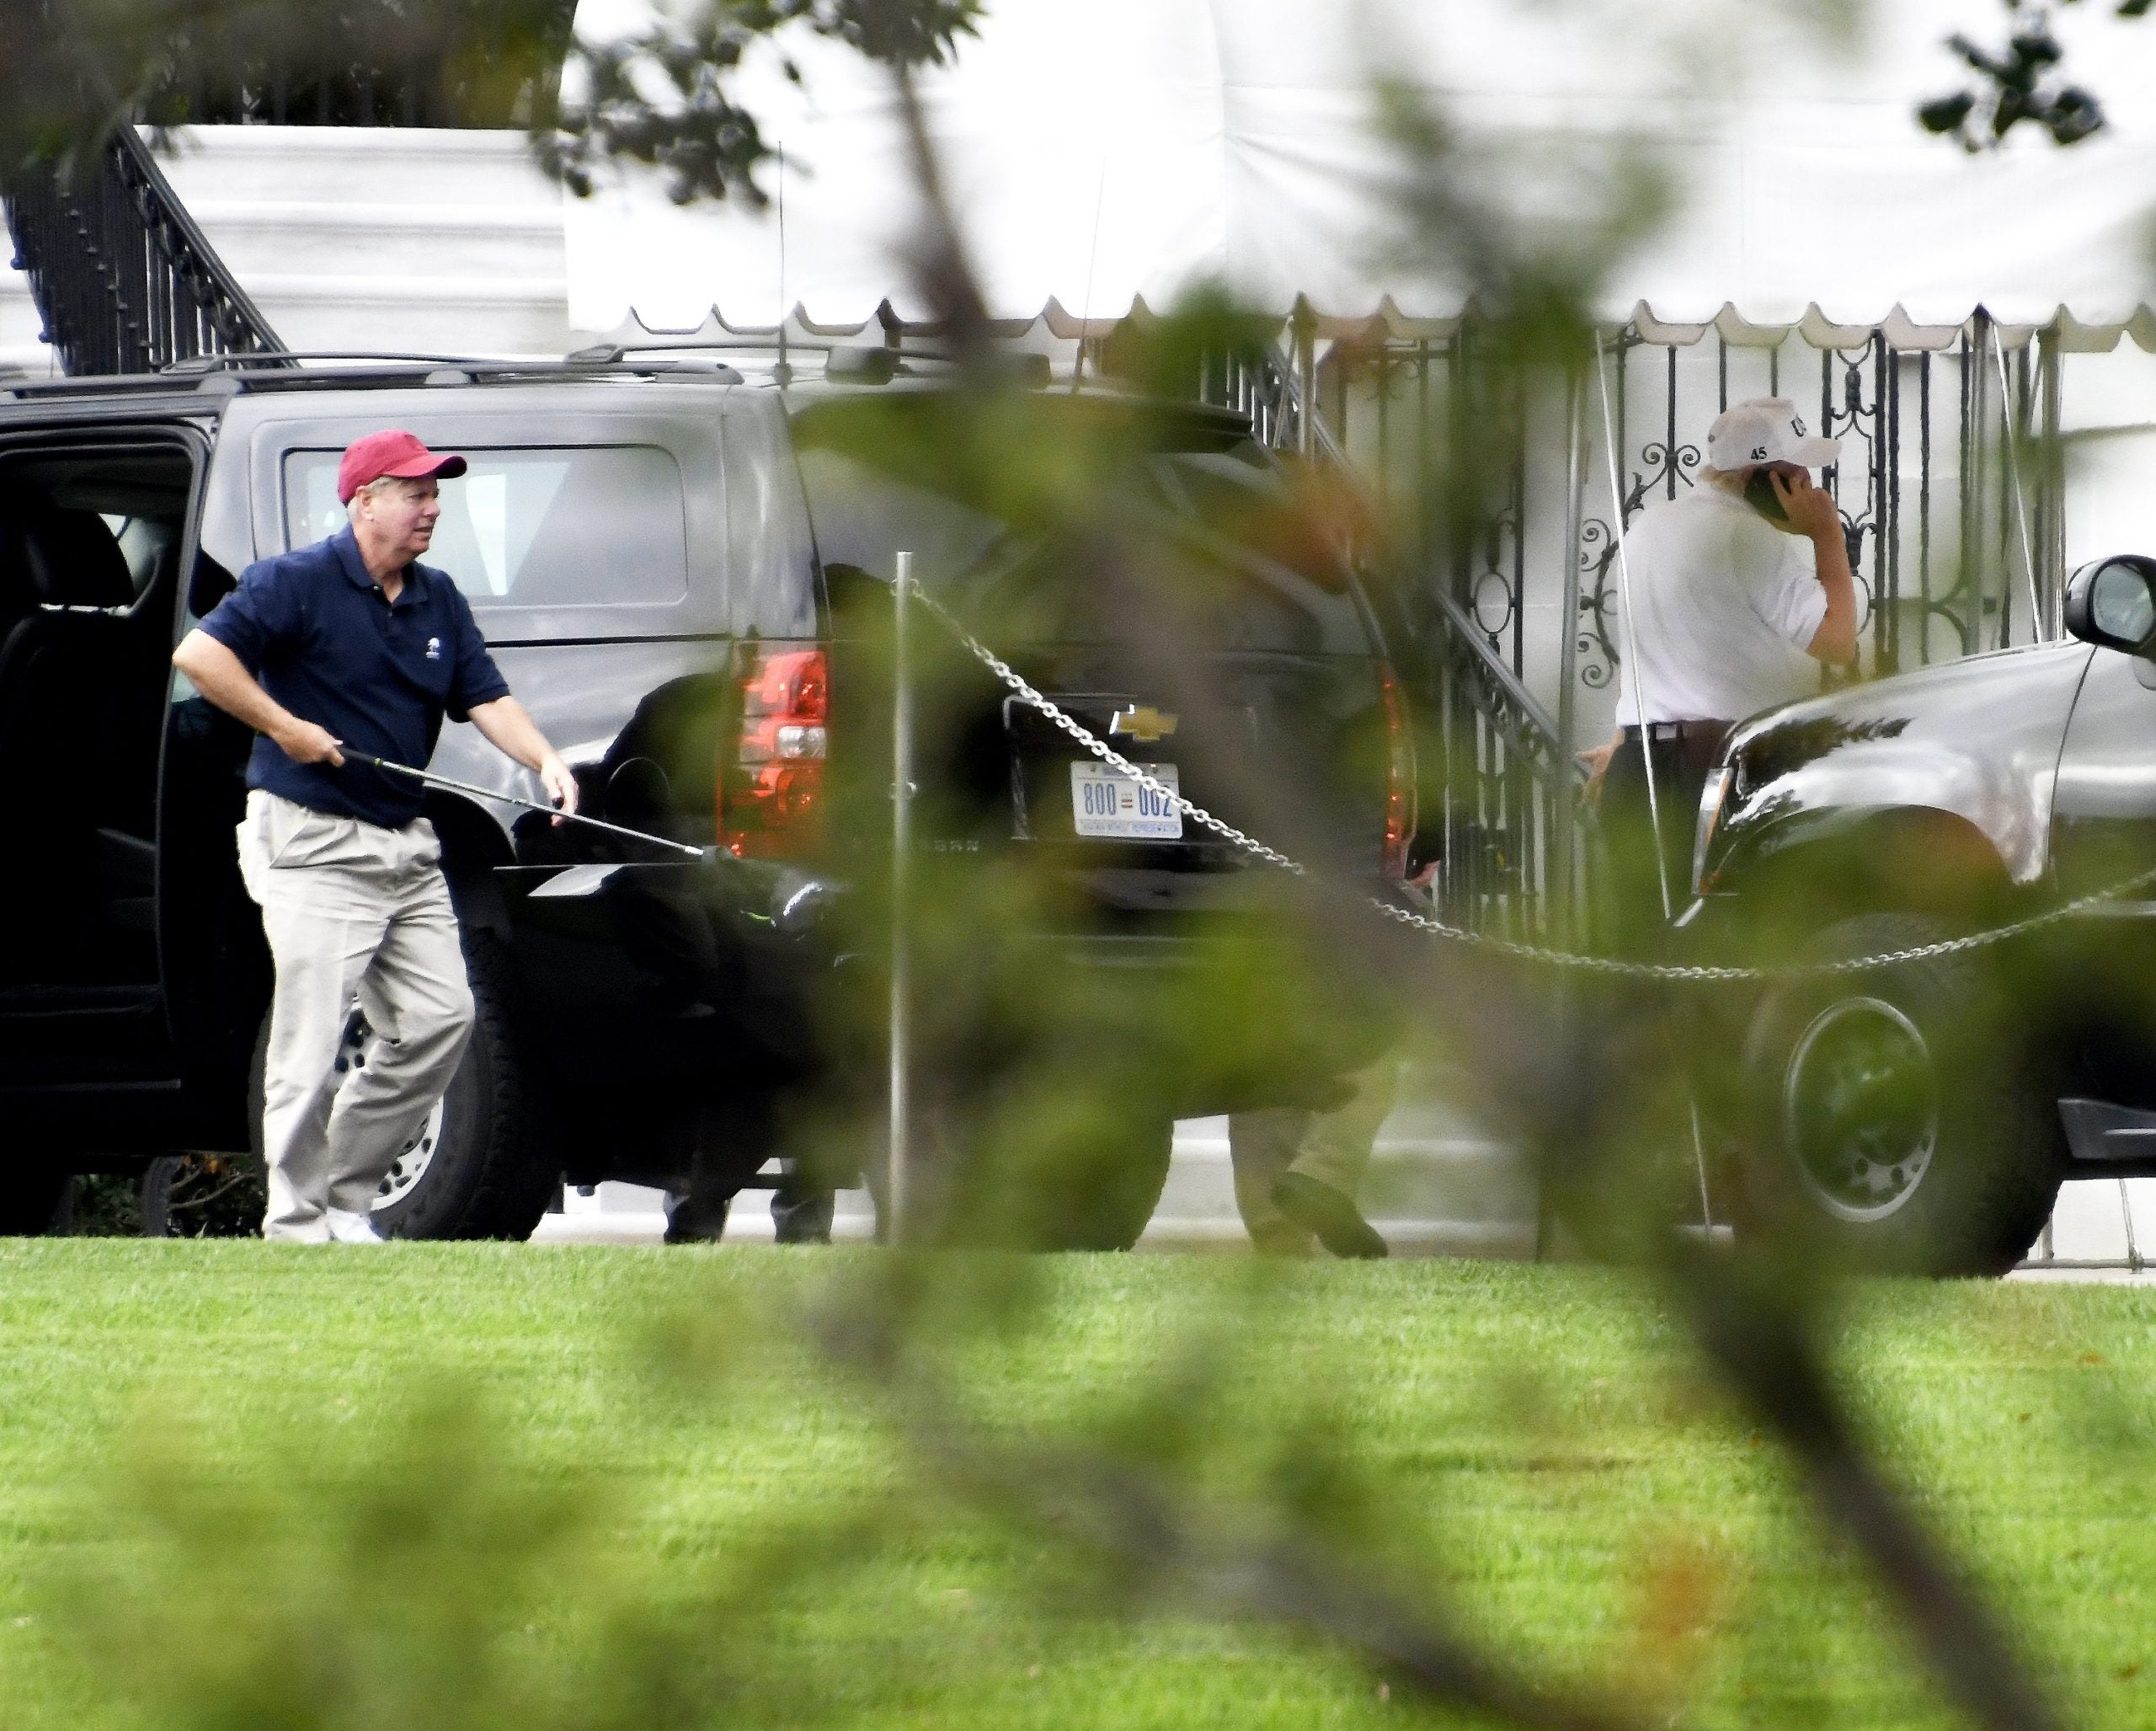 Lindsey Graham returns from golfing with his BFF Donald Trump